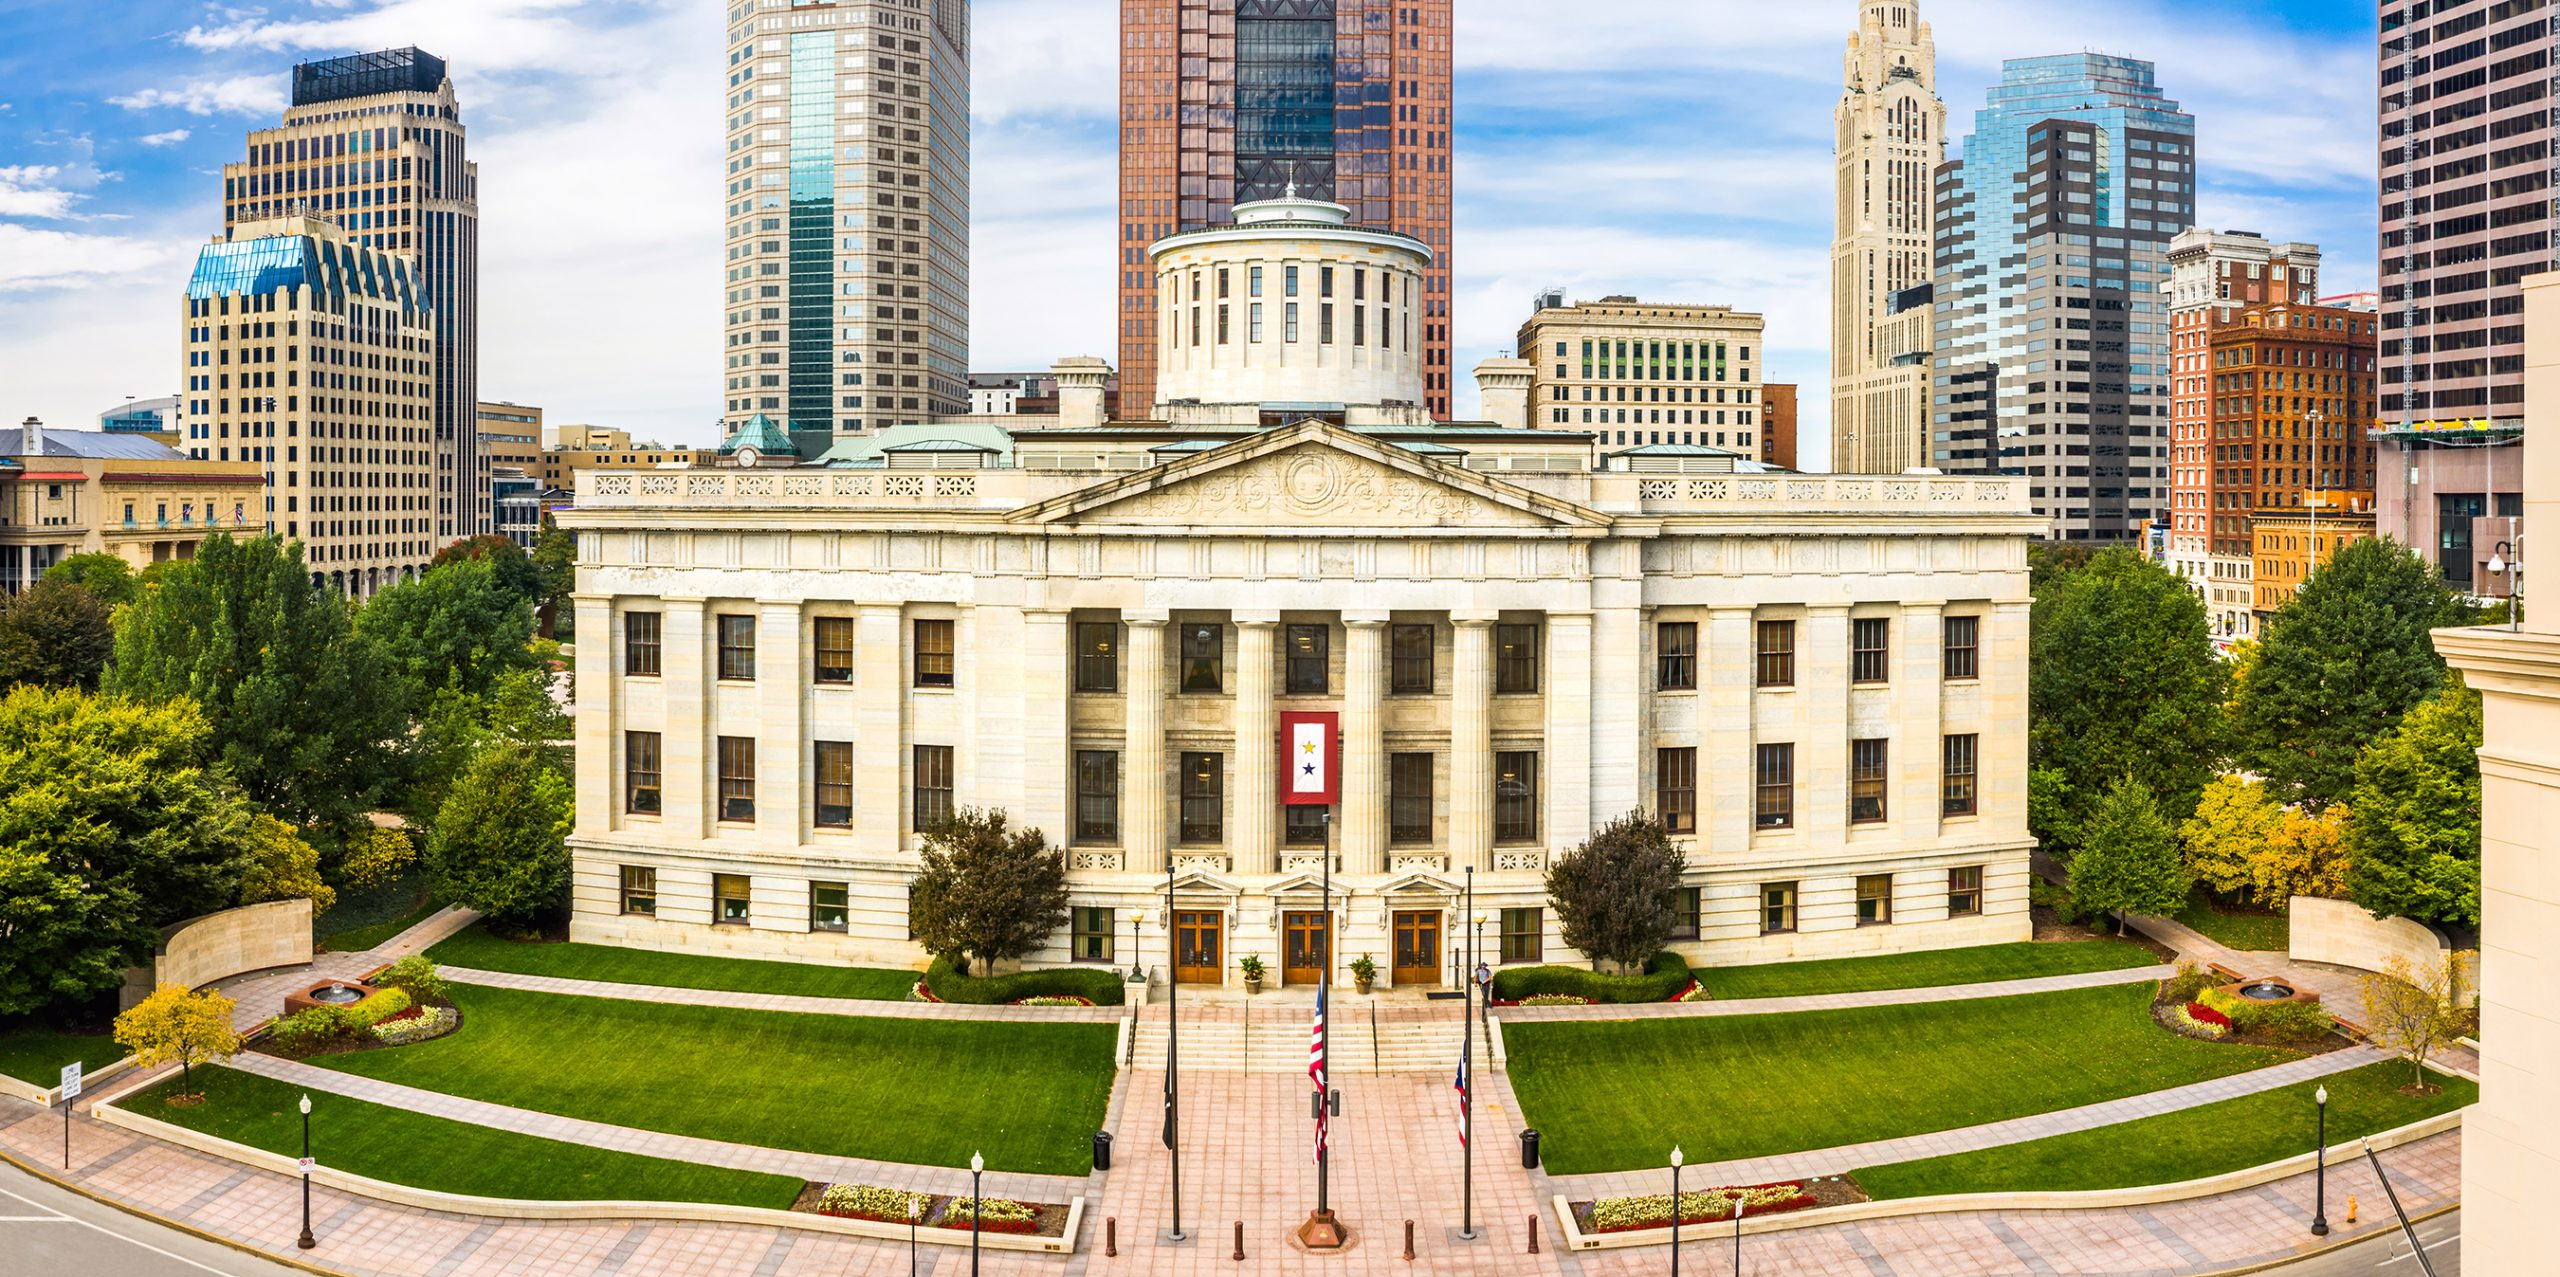 front view of Ohio Statehouse